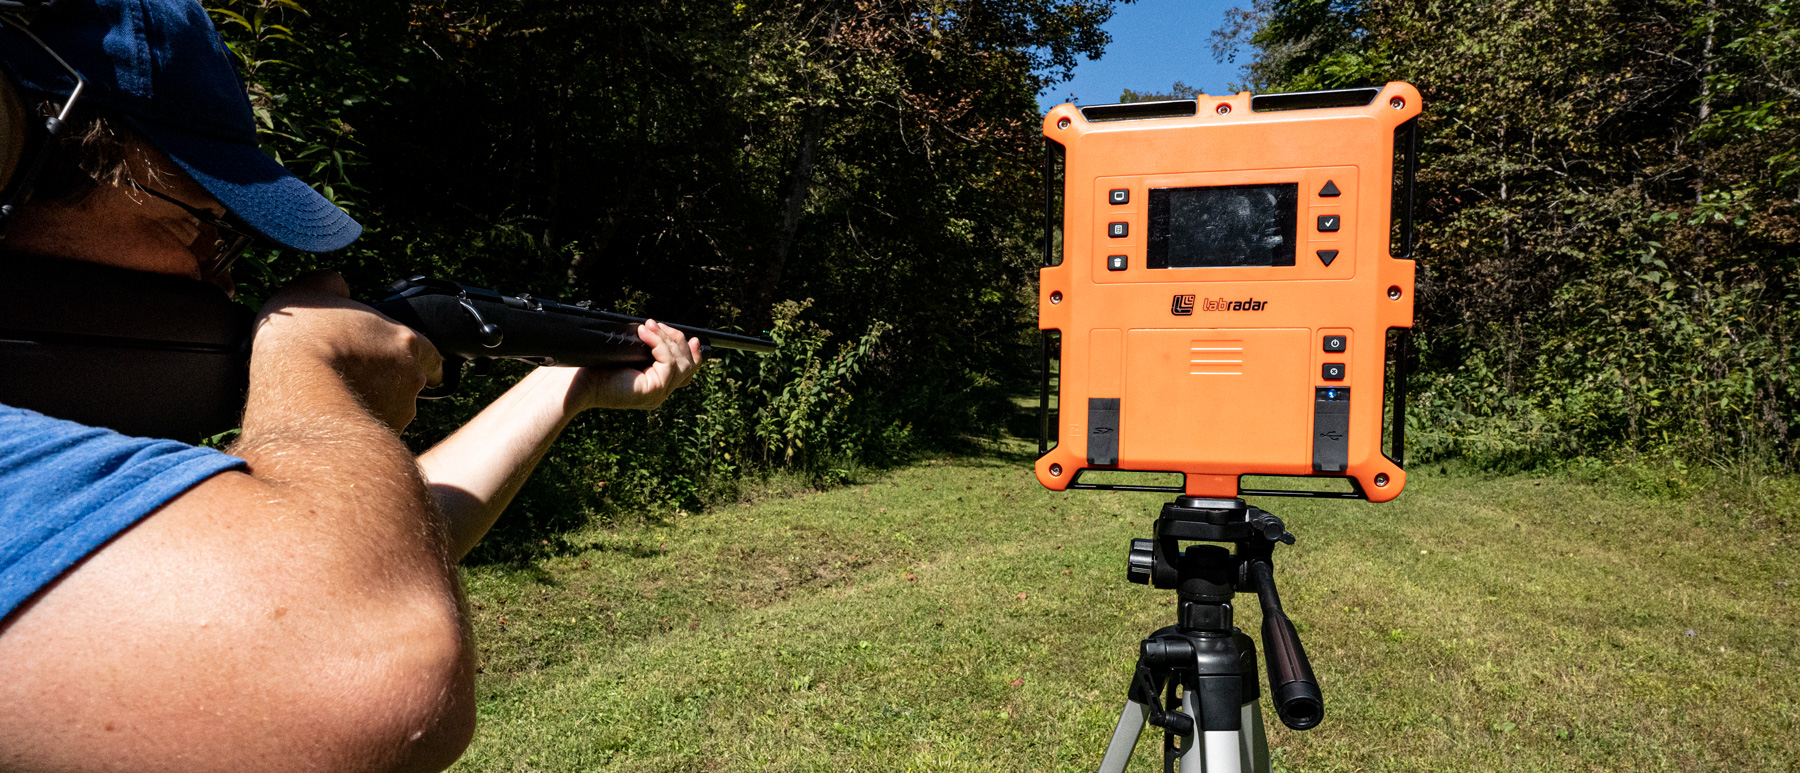 Shooting a 22 WMR rifle at the range and testing velocity with a chronograph